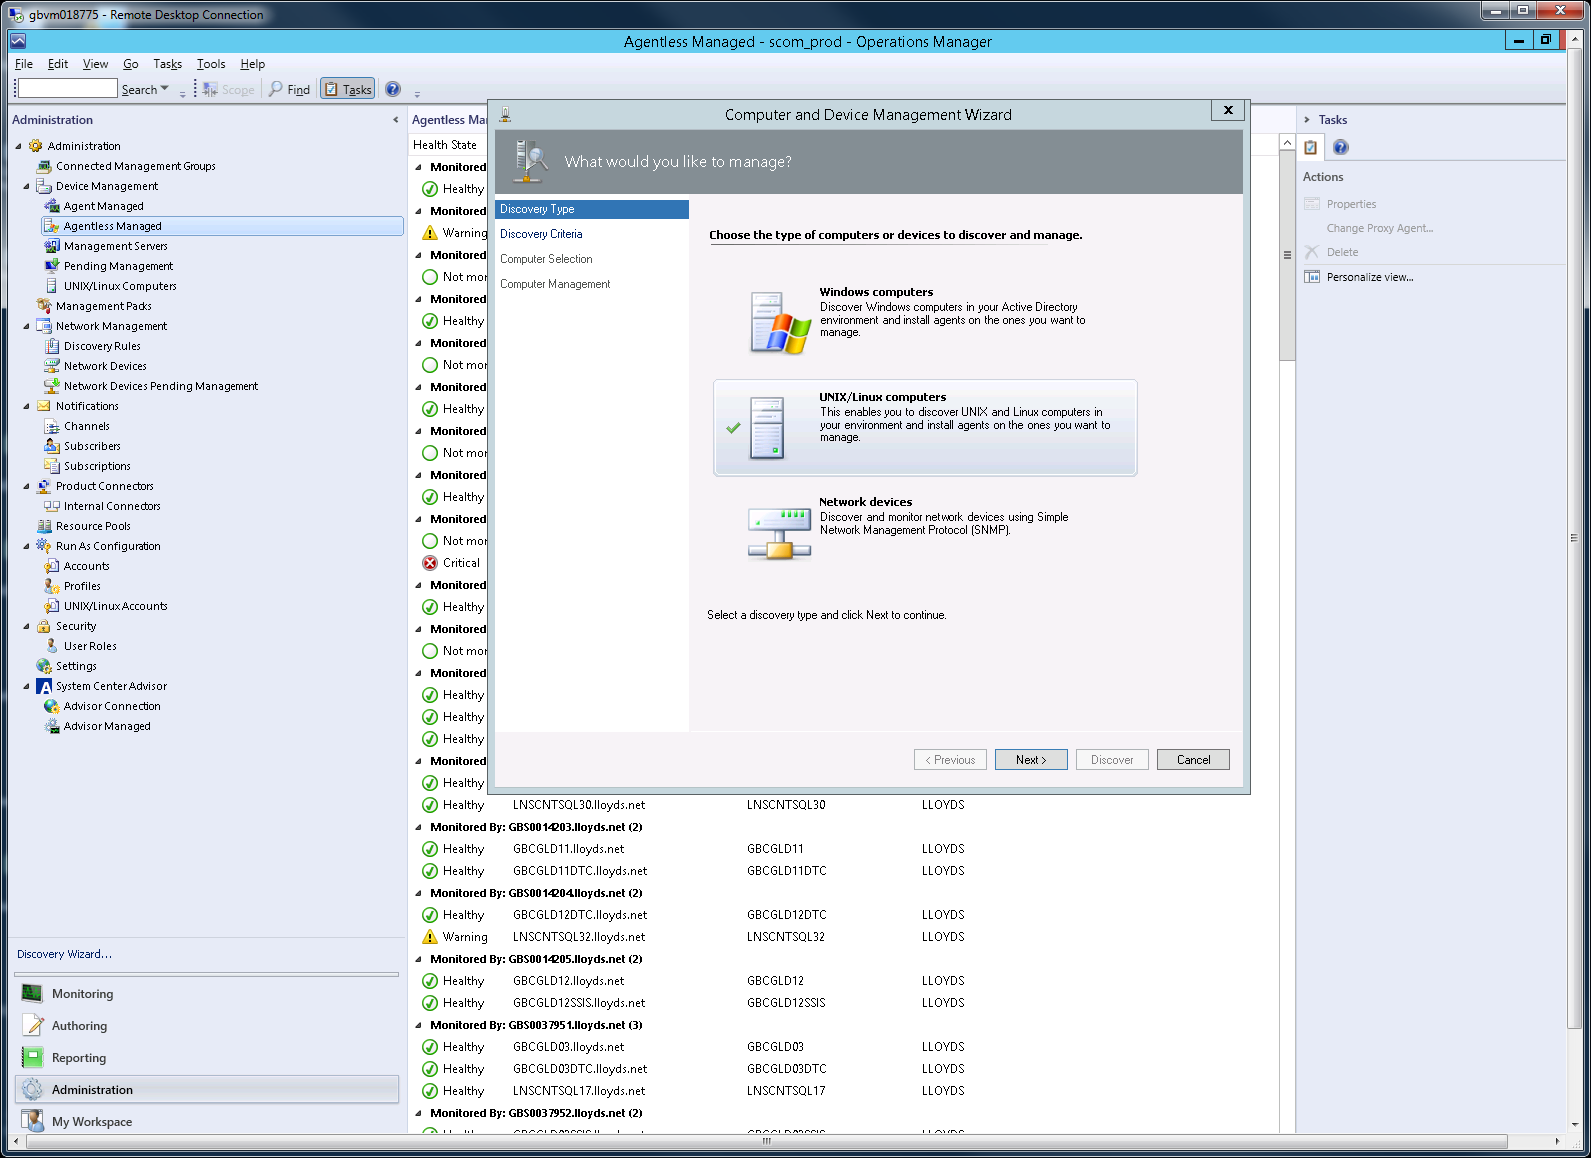 Will SCOM 2012 R2 support Linux SCOM agentless monitoring ?